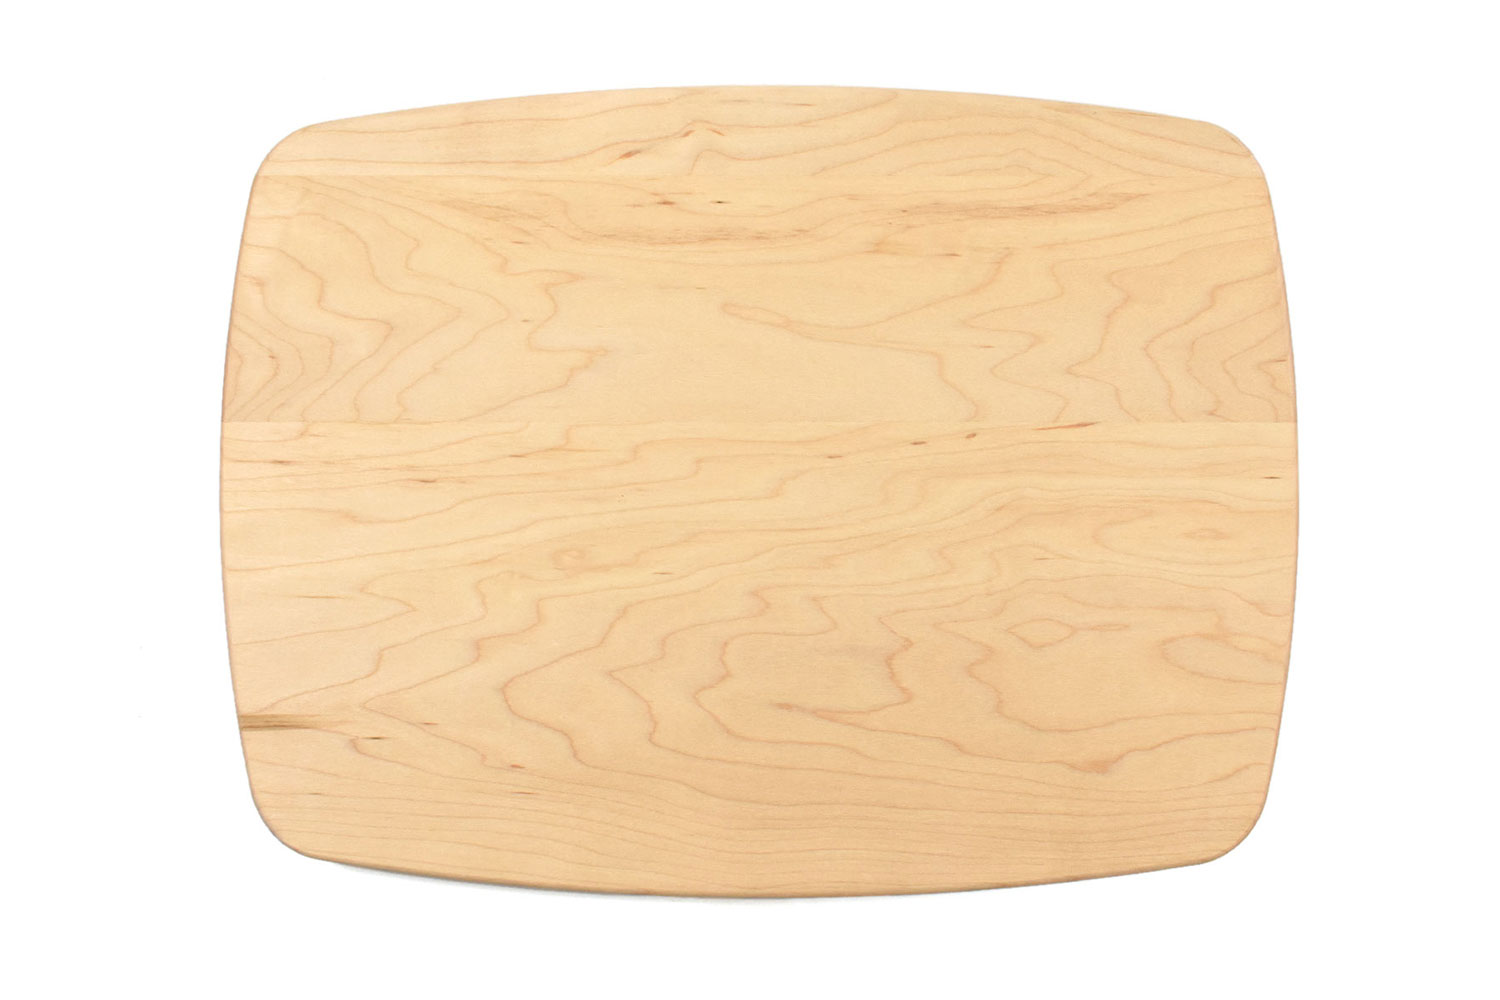 Maple rectangular curved cutting board with rounded corners